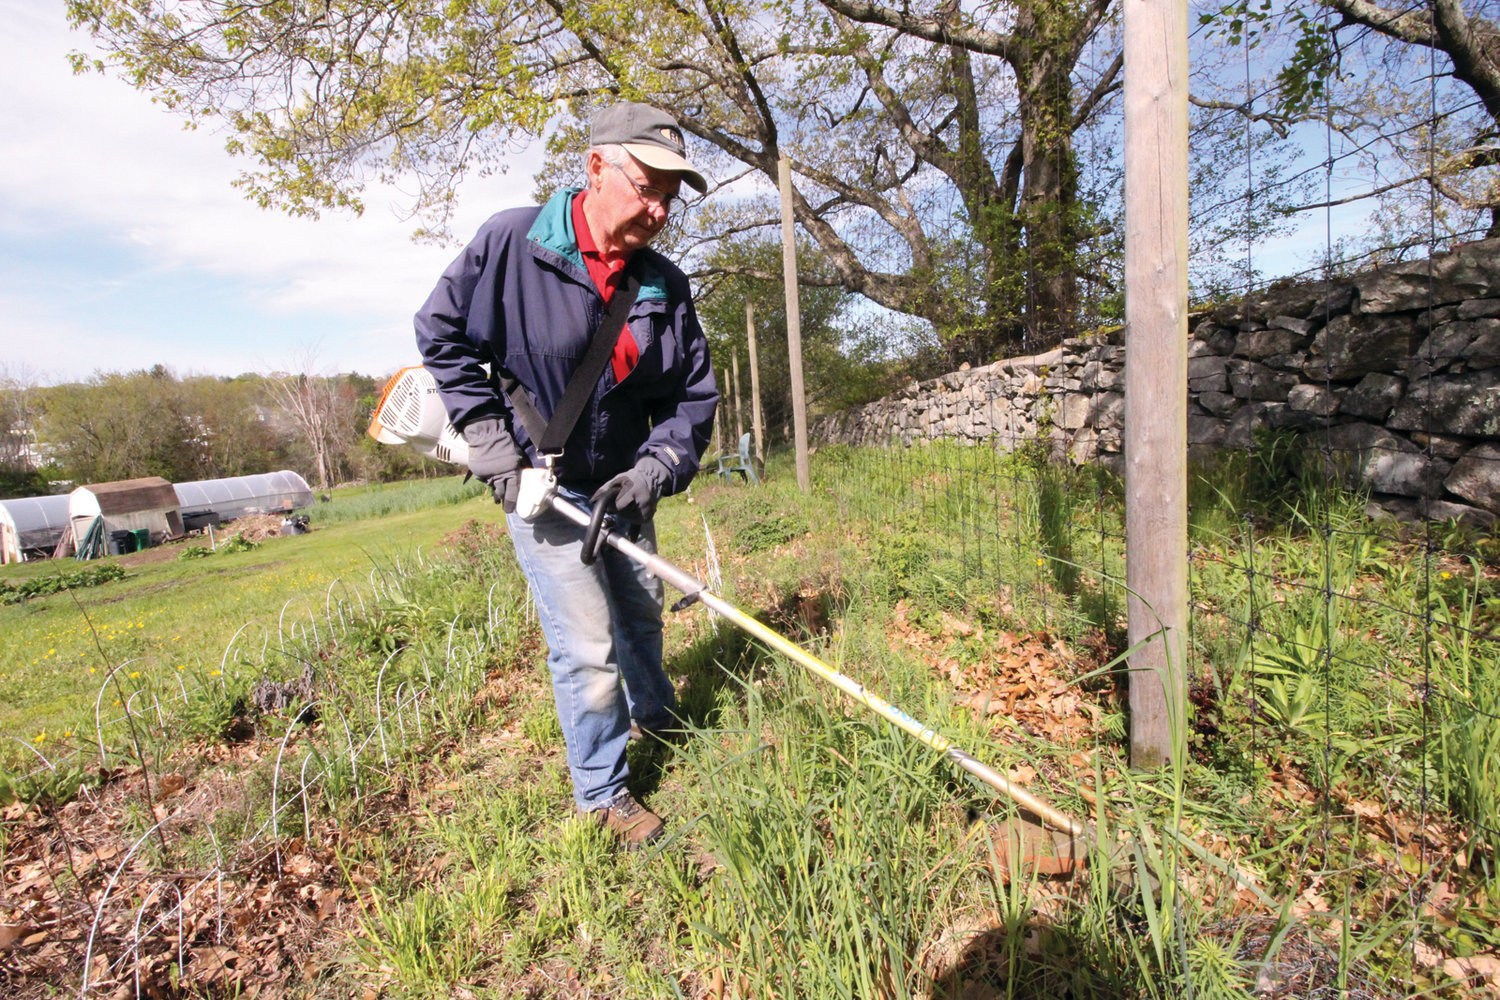 TRIMMING THE EDGES: Tom Sanford walked the perimeter of the farm on Centerville Road to trim back the growth of weeds and grass.